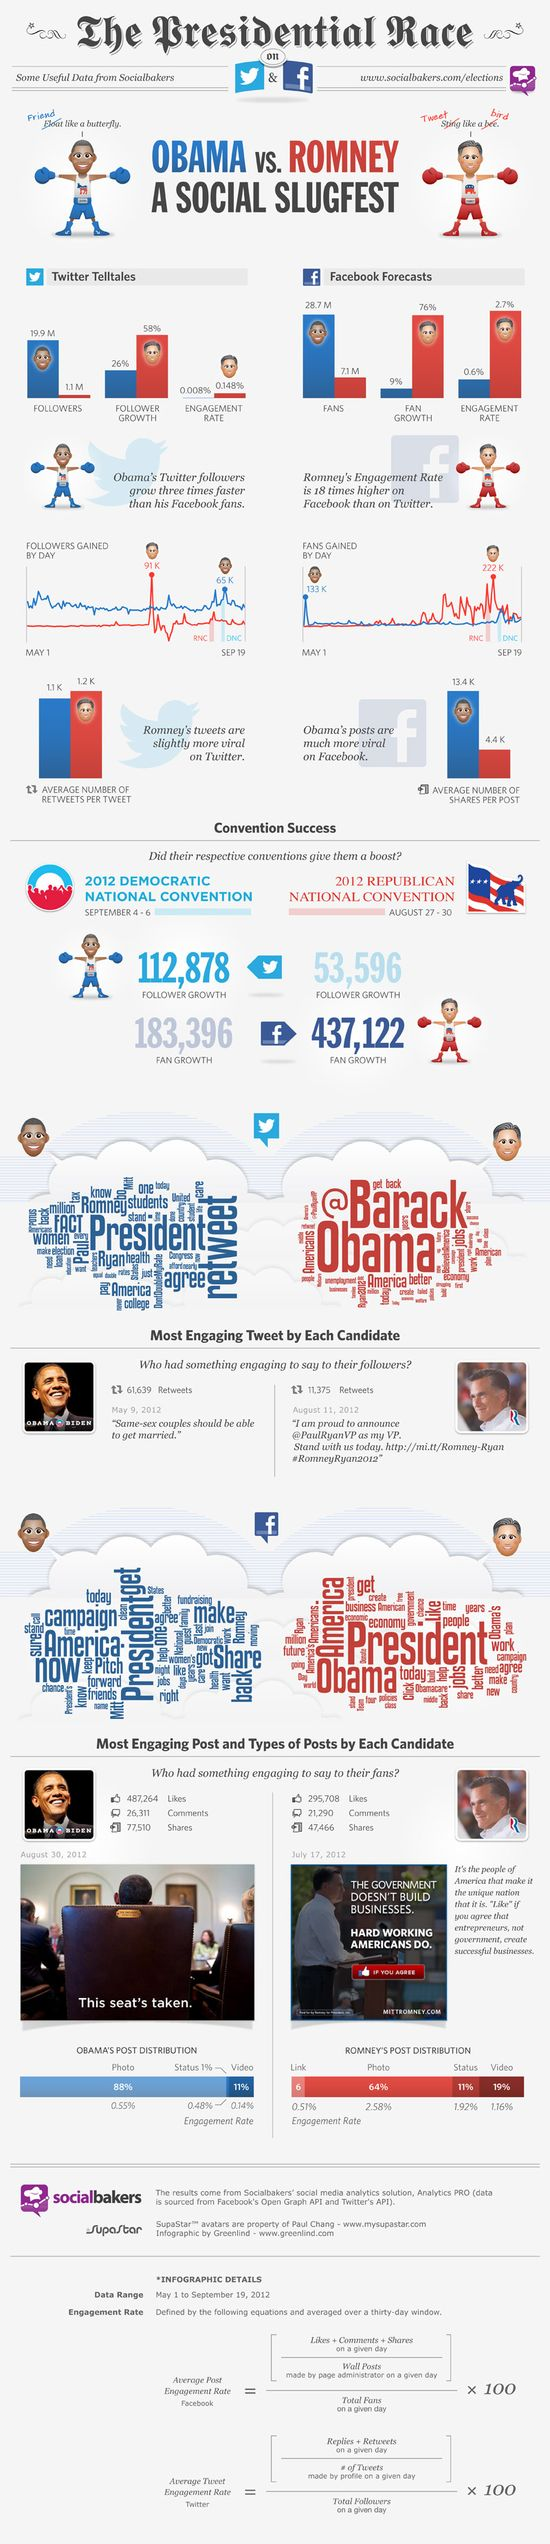 The Presidential Race on Twitter and Facebook - Obama vs Romney